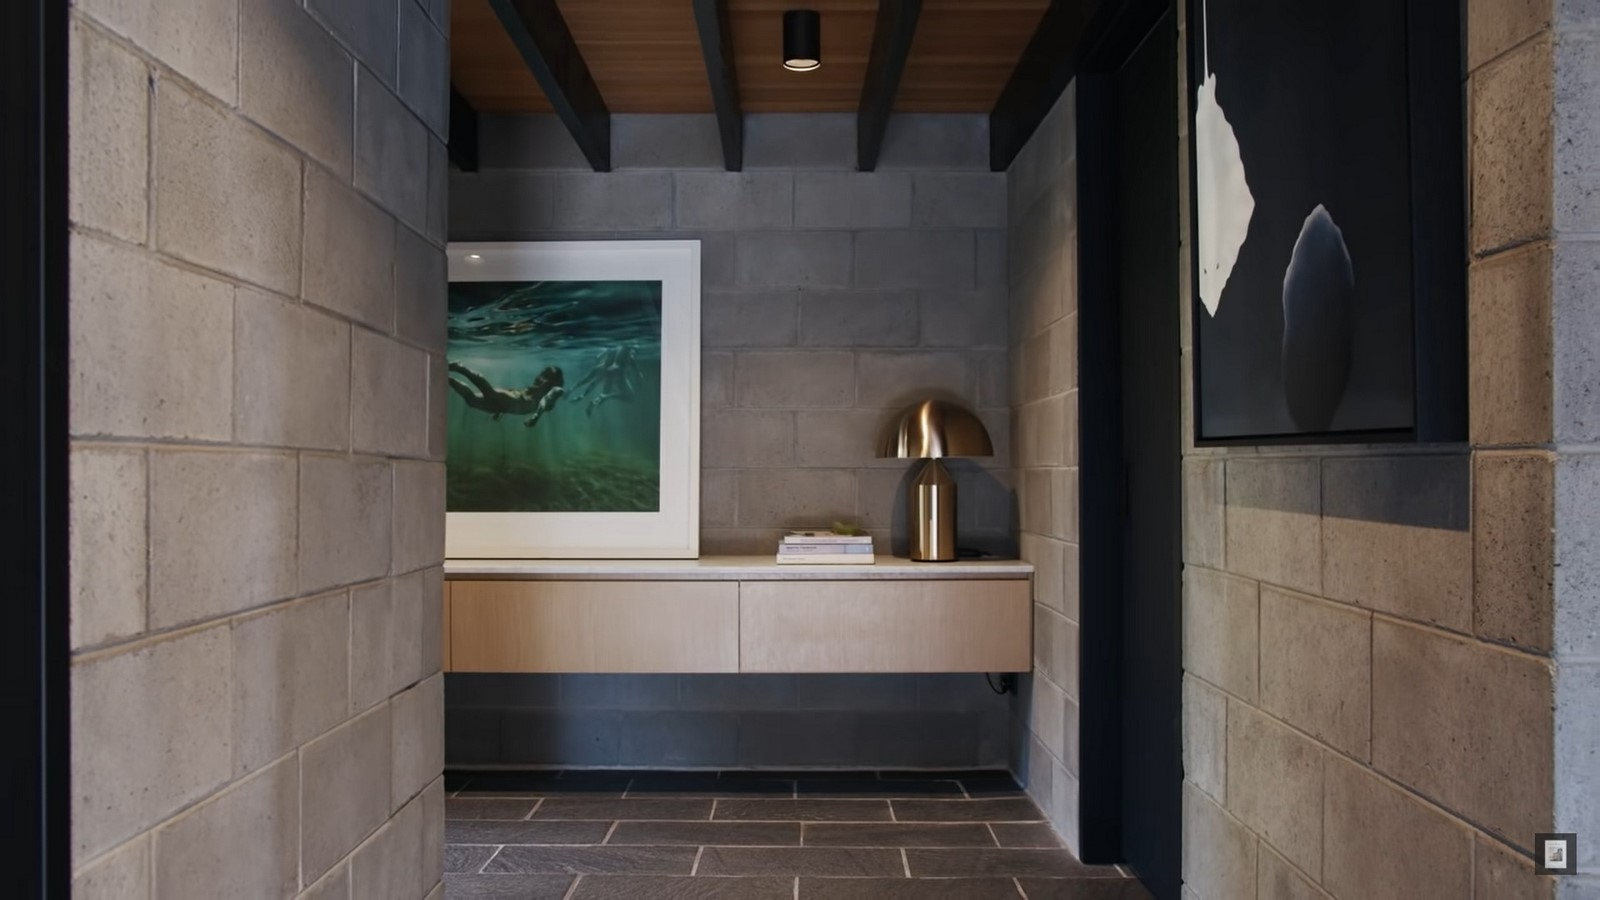 Chambers House by Shaun Lockyer Architects: Raw, Crafted, Modernist building - Sheet7